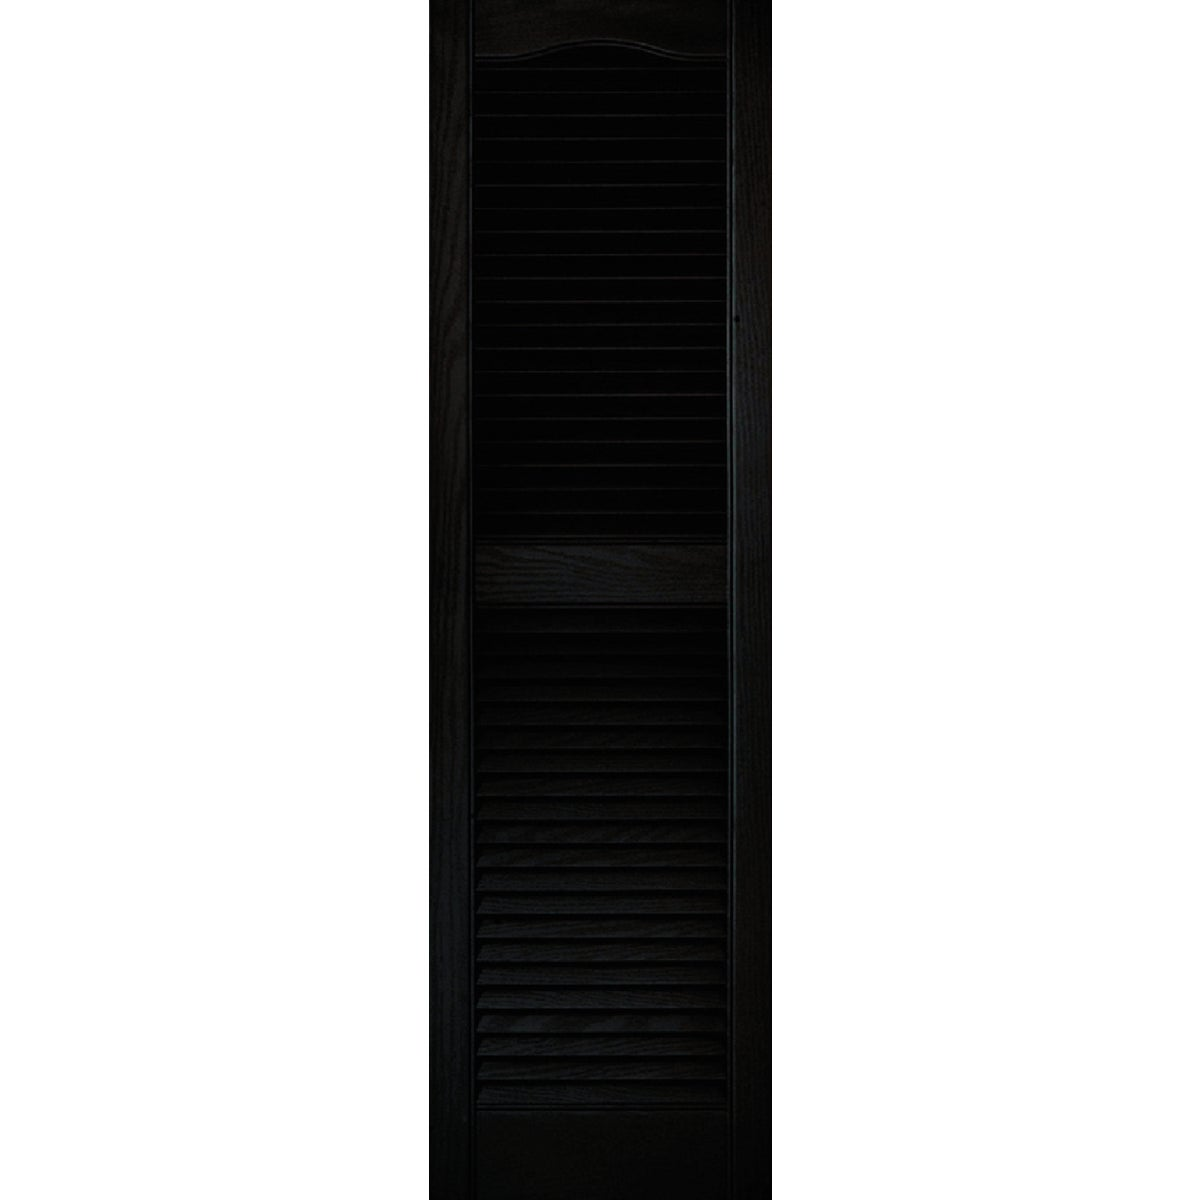 15X52 BLK LOUVER SHUTTER - 020140052002 by The Tapco Group